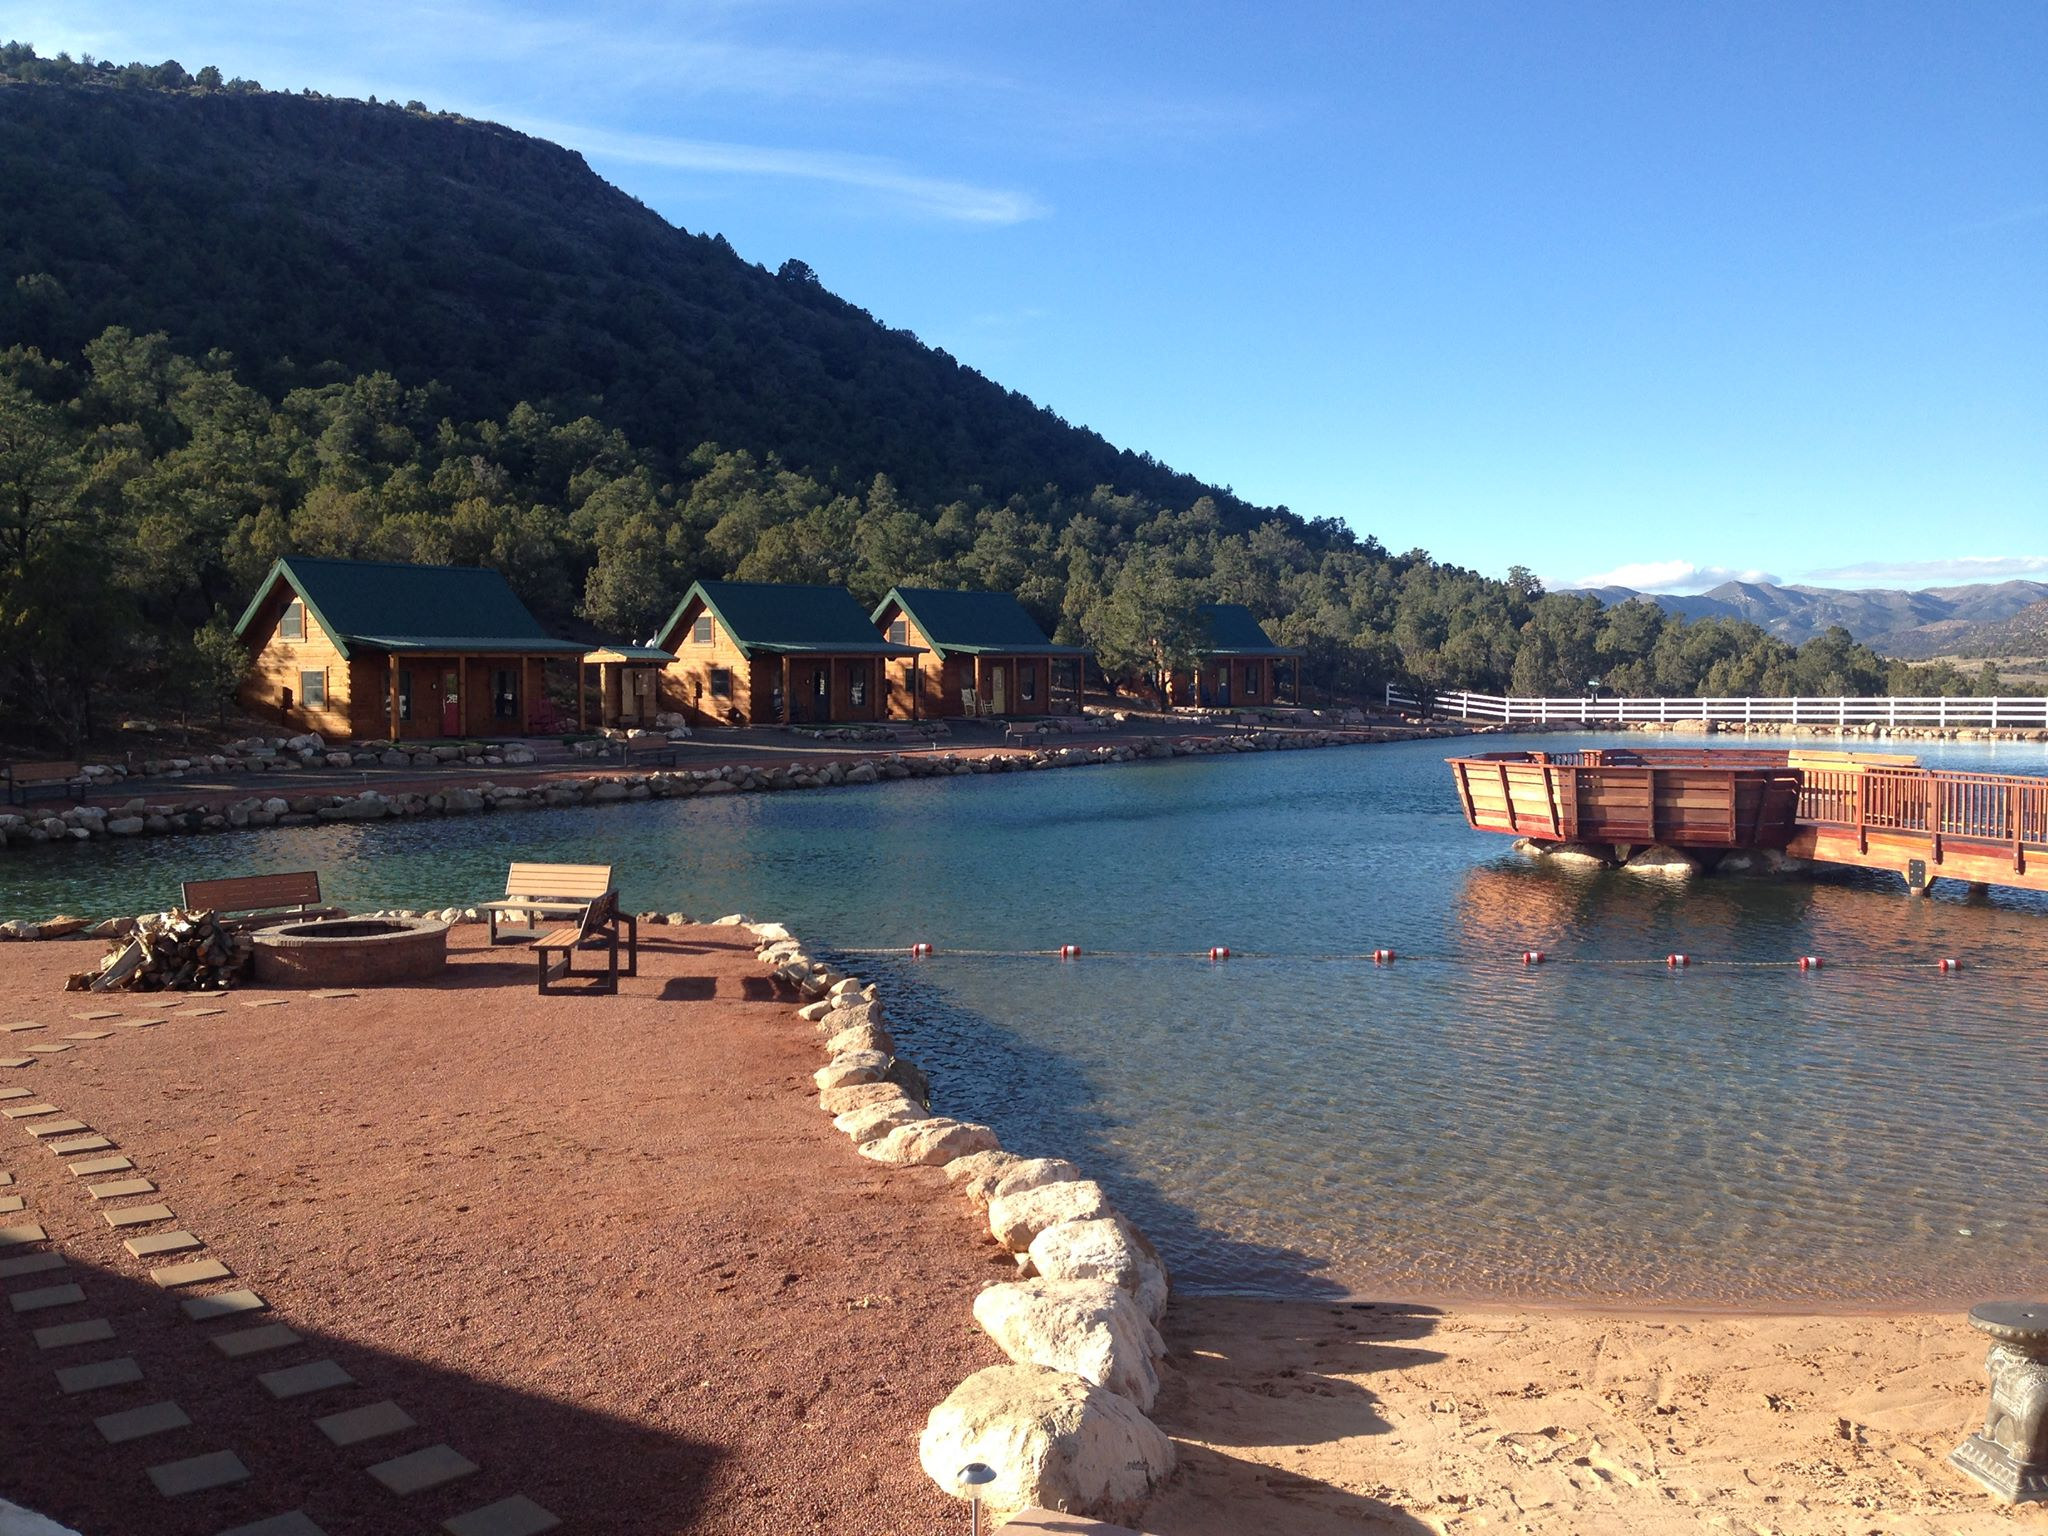 Holmstead Ranch Resort beach, lake and cabins